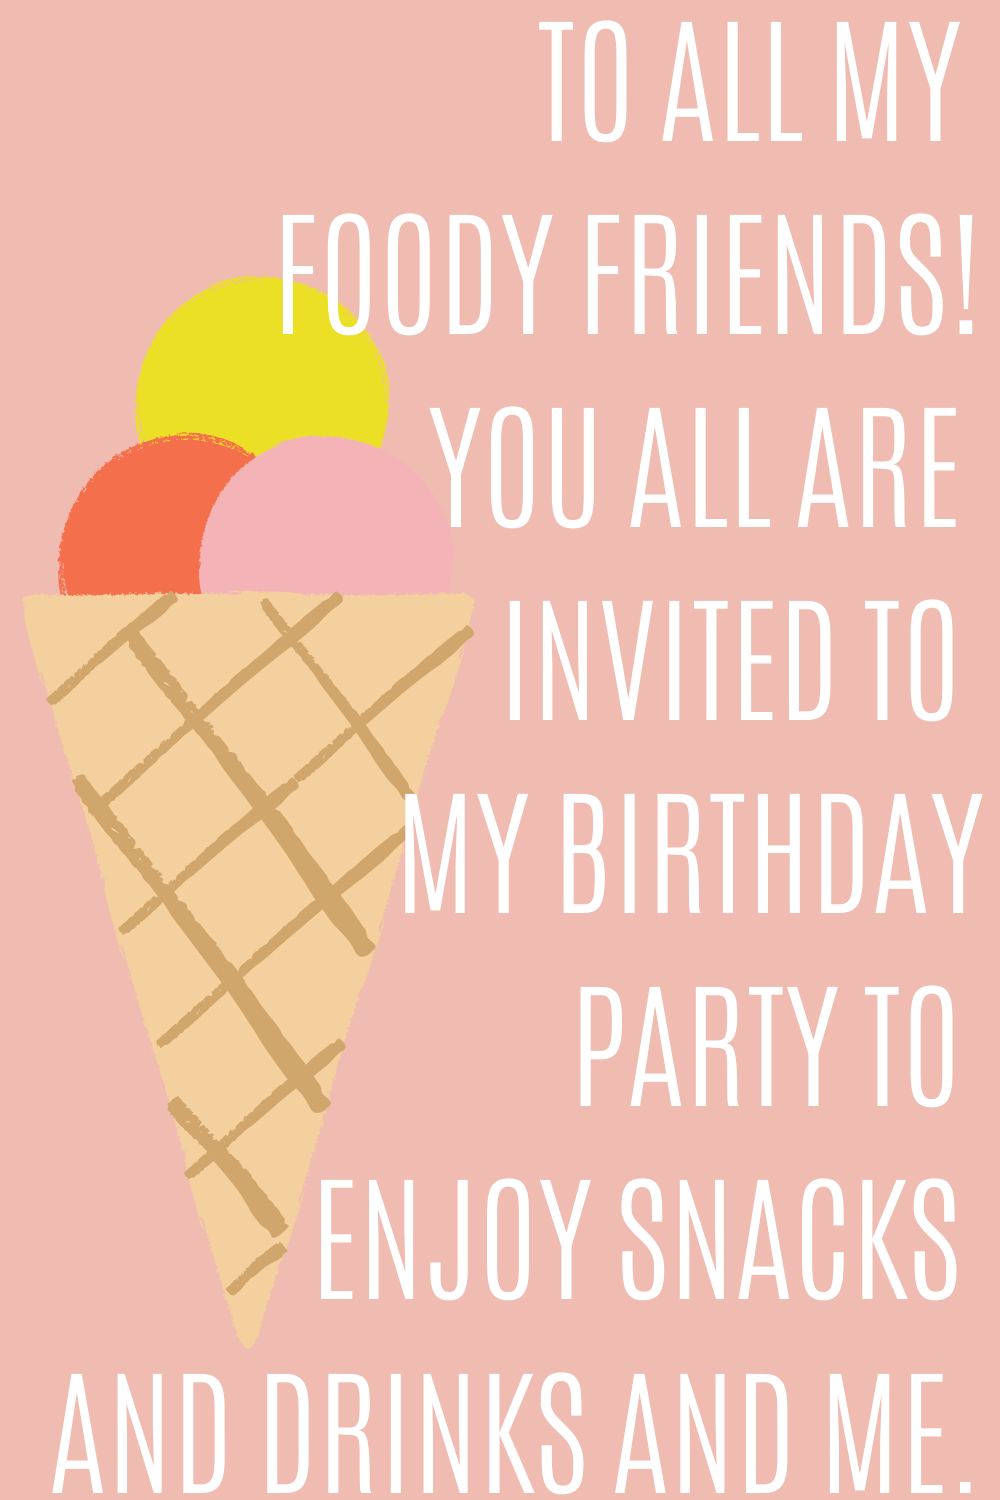 21 funny birthday invitation quotes